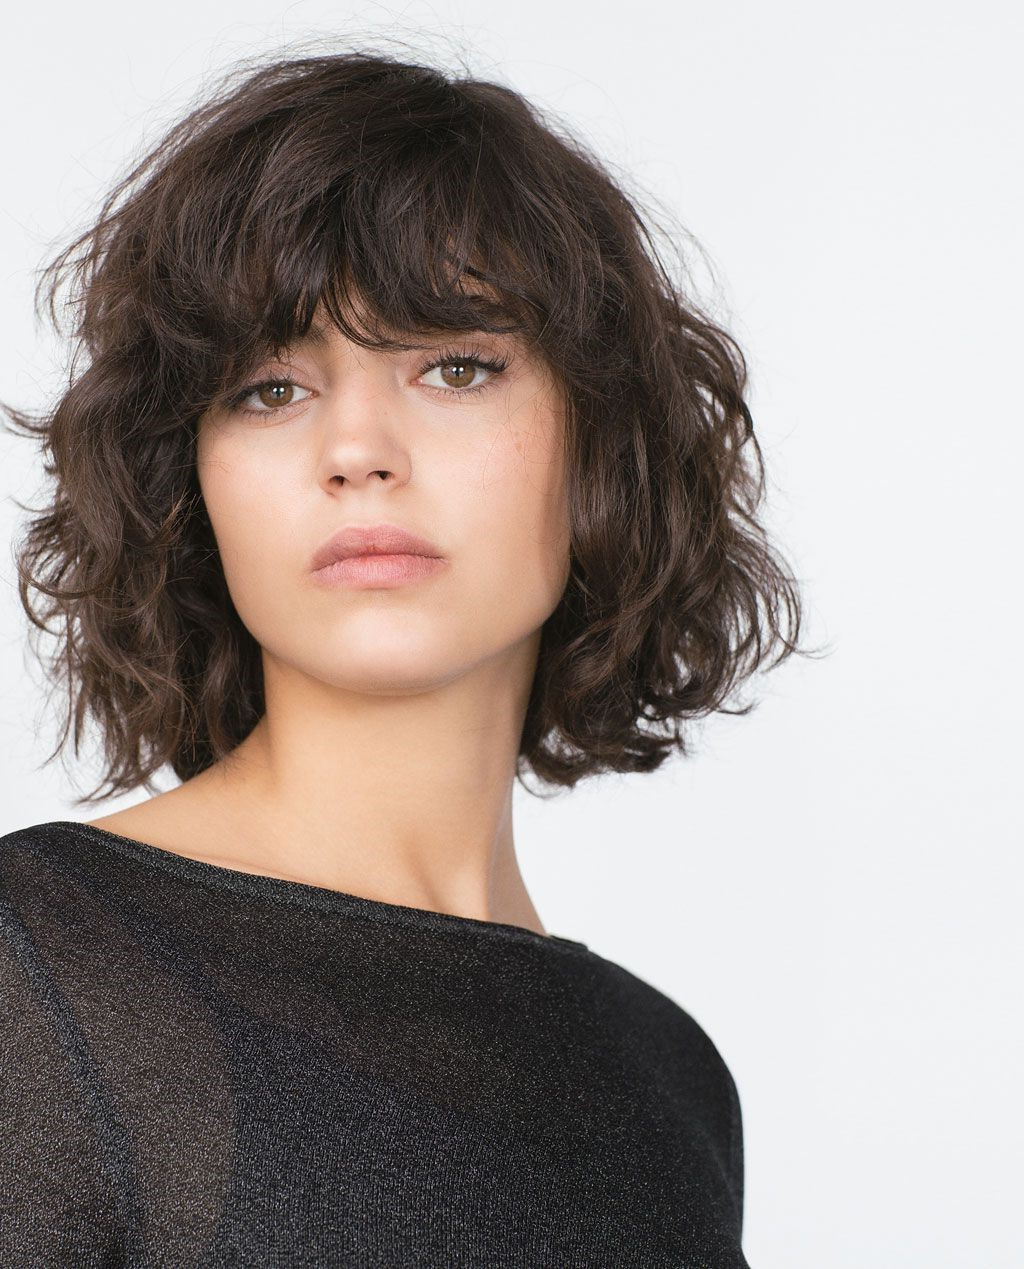 Latest Perfect Bangs And Wild Layers Hairstyles In Most Favored Short Bob With Bangs 2019 That You Can't Miss (View 11 of 20)